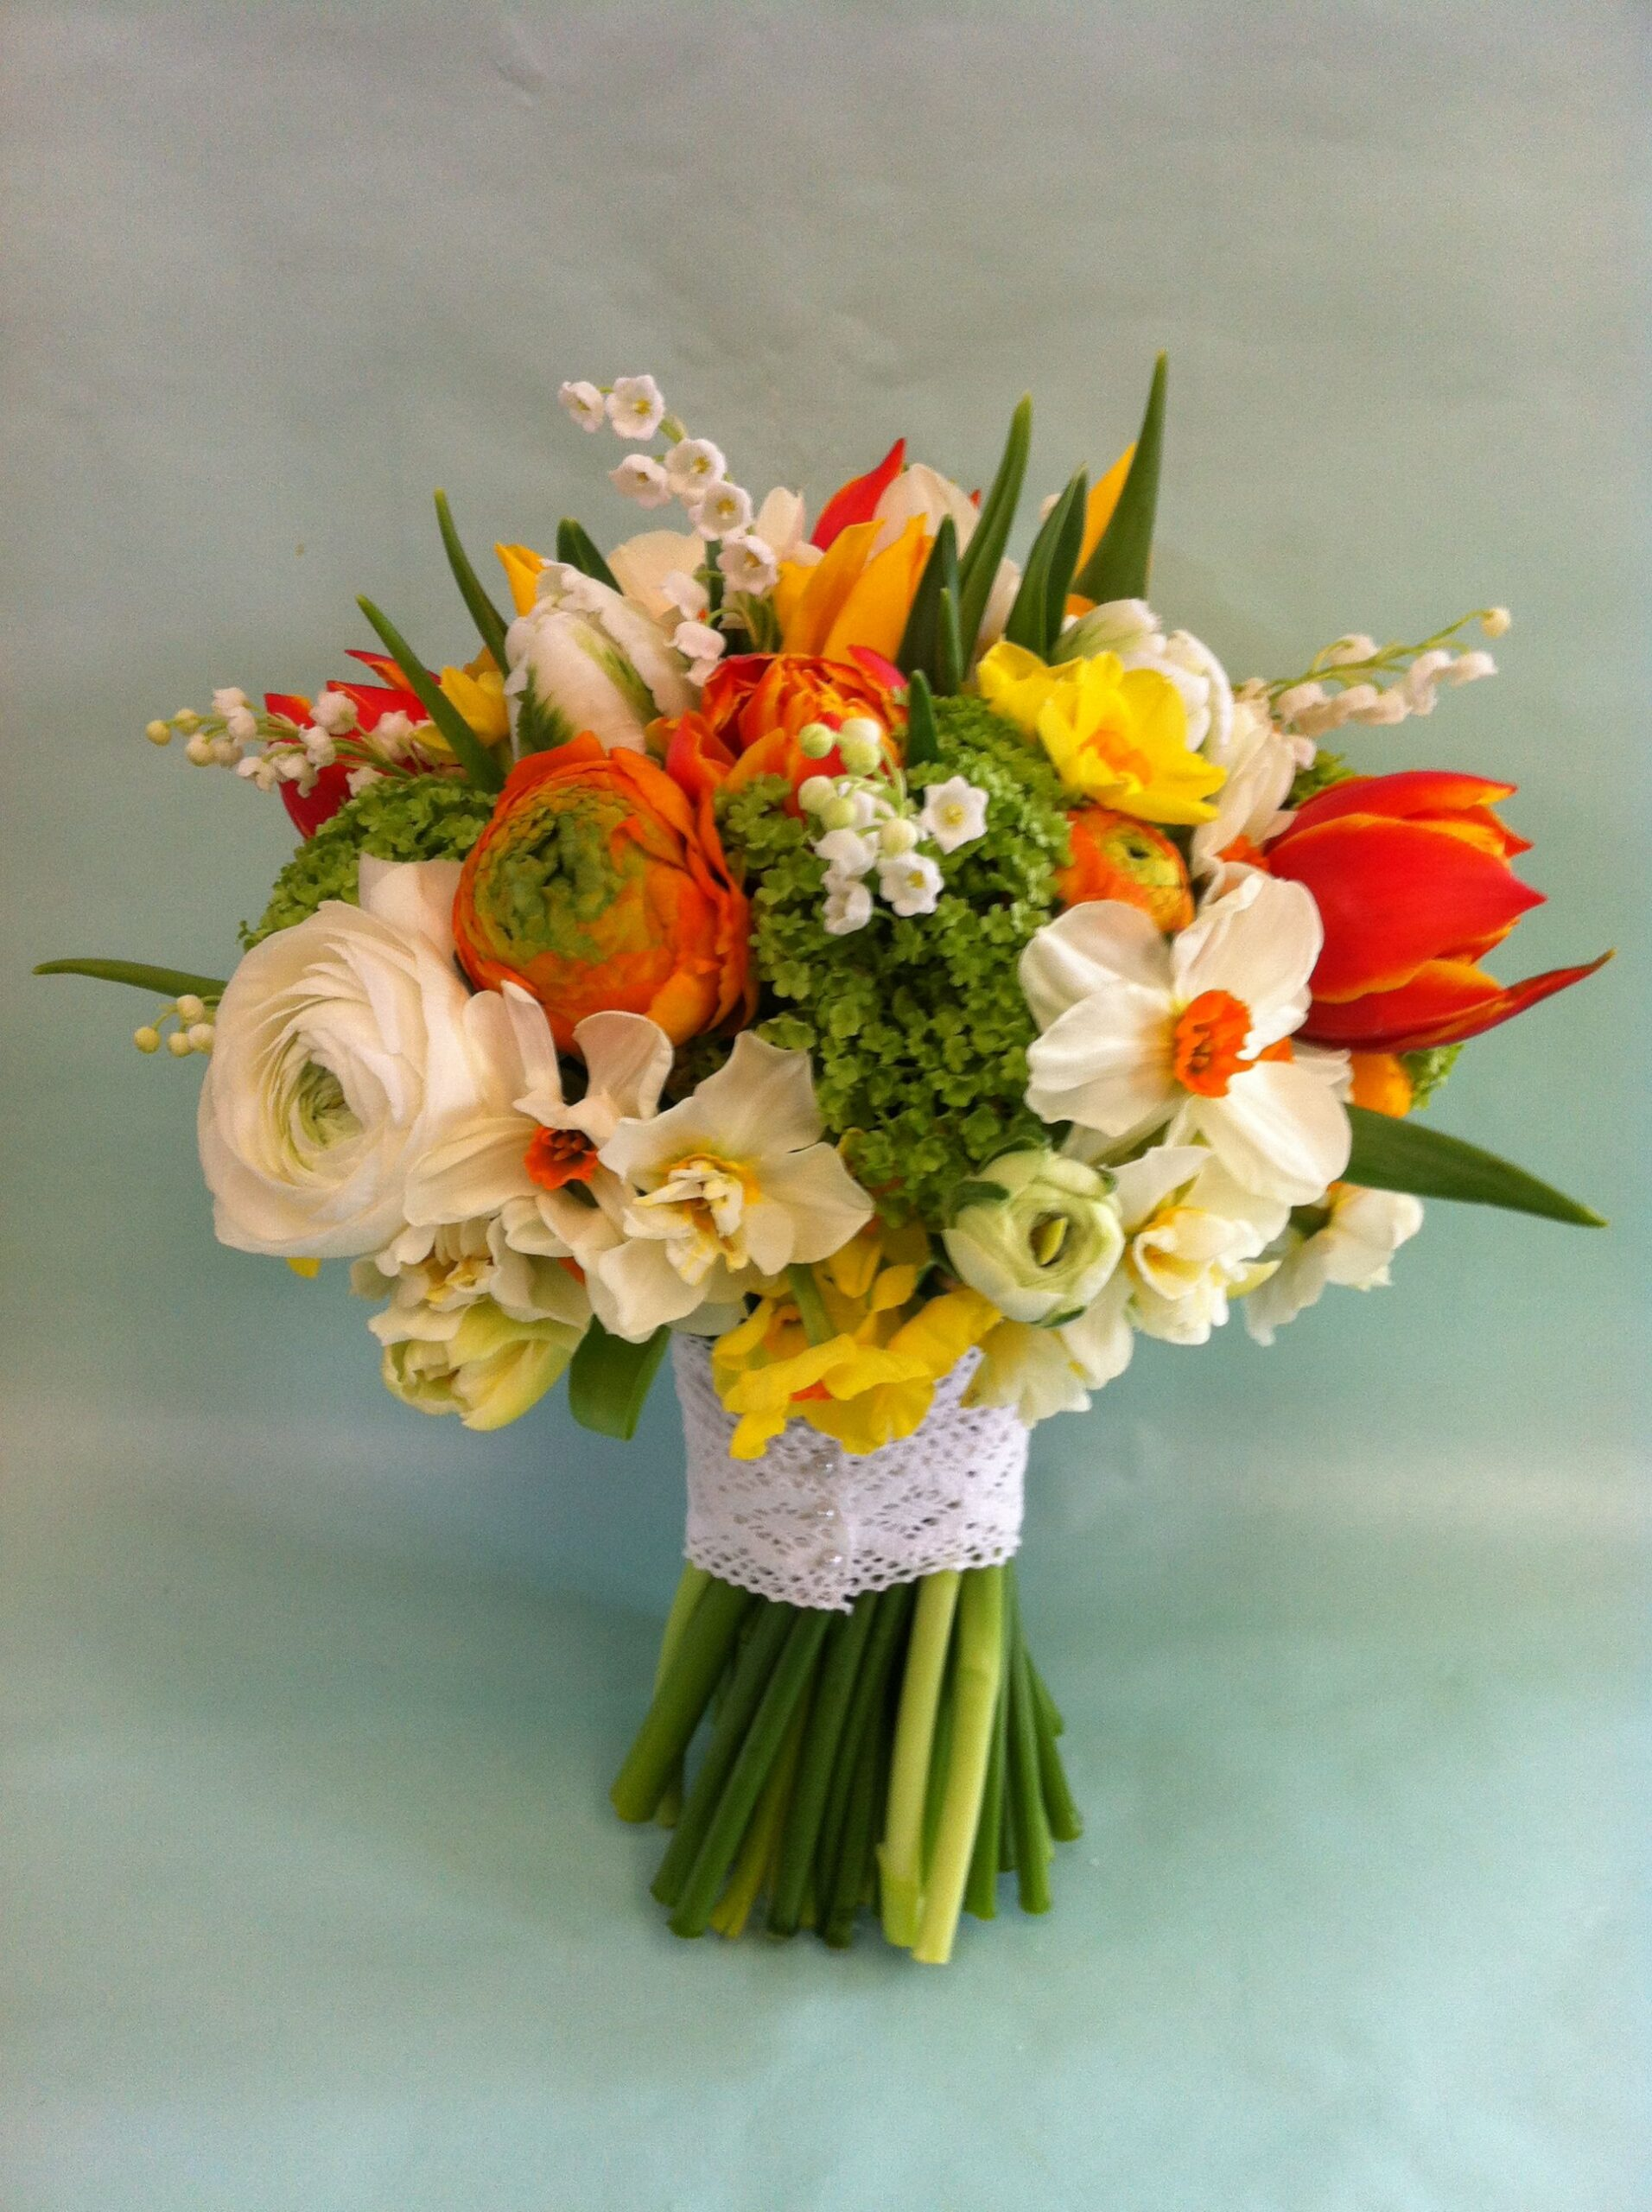 ideas for you to choose orange narcissus wedding flowers 2 scaled - Ideas for You to Choose Orange Narcissus Wedding Flowers